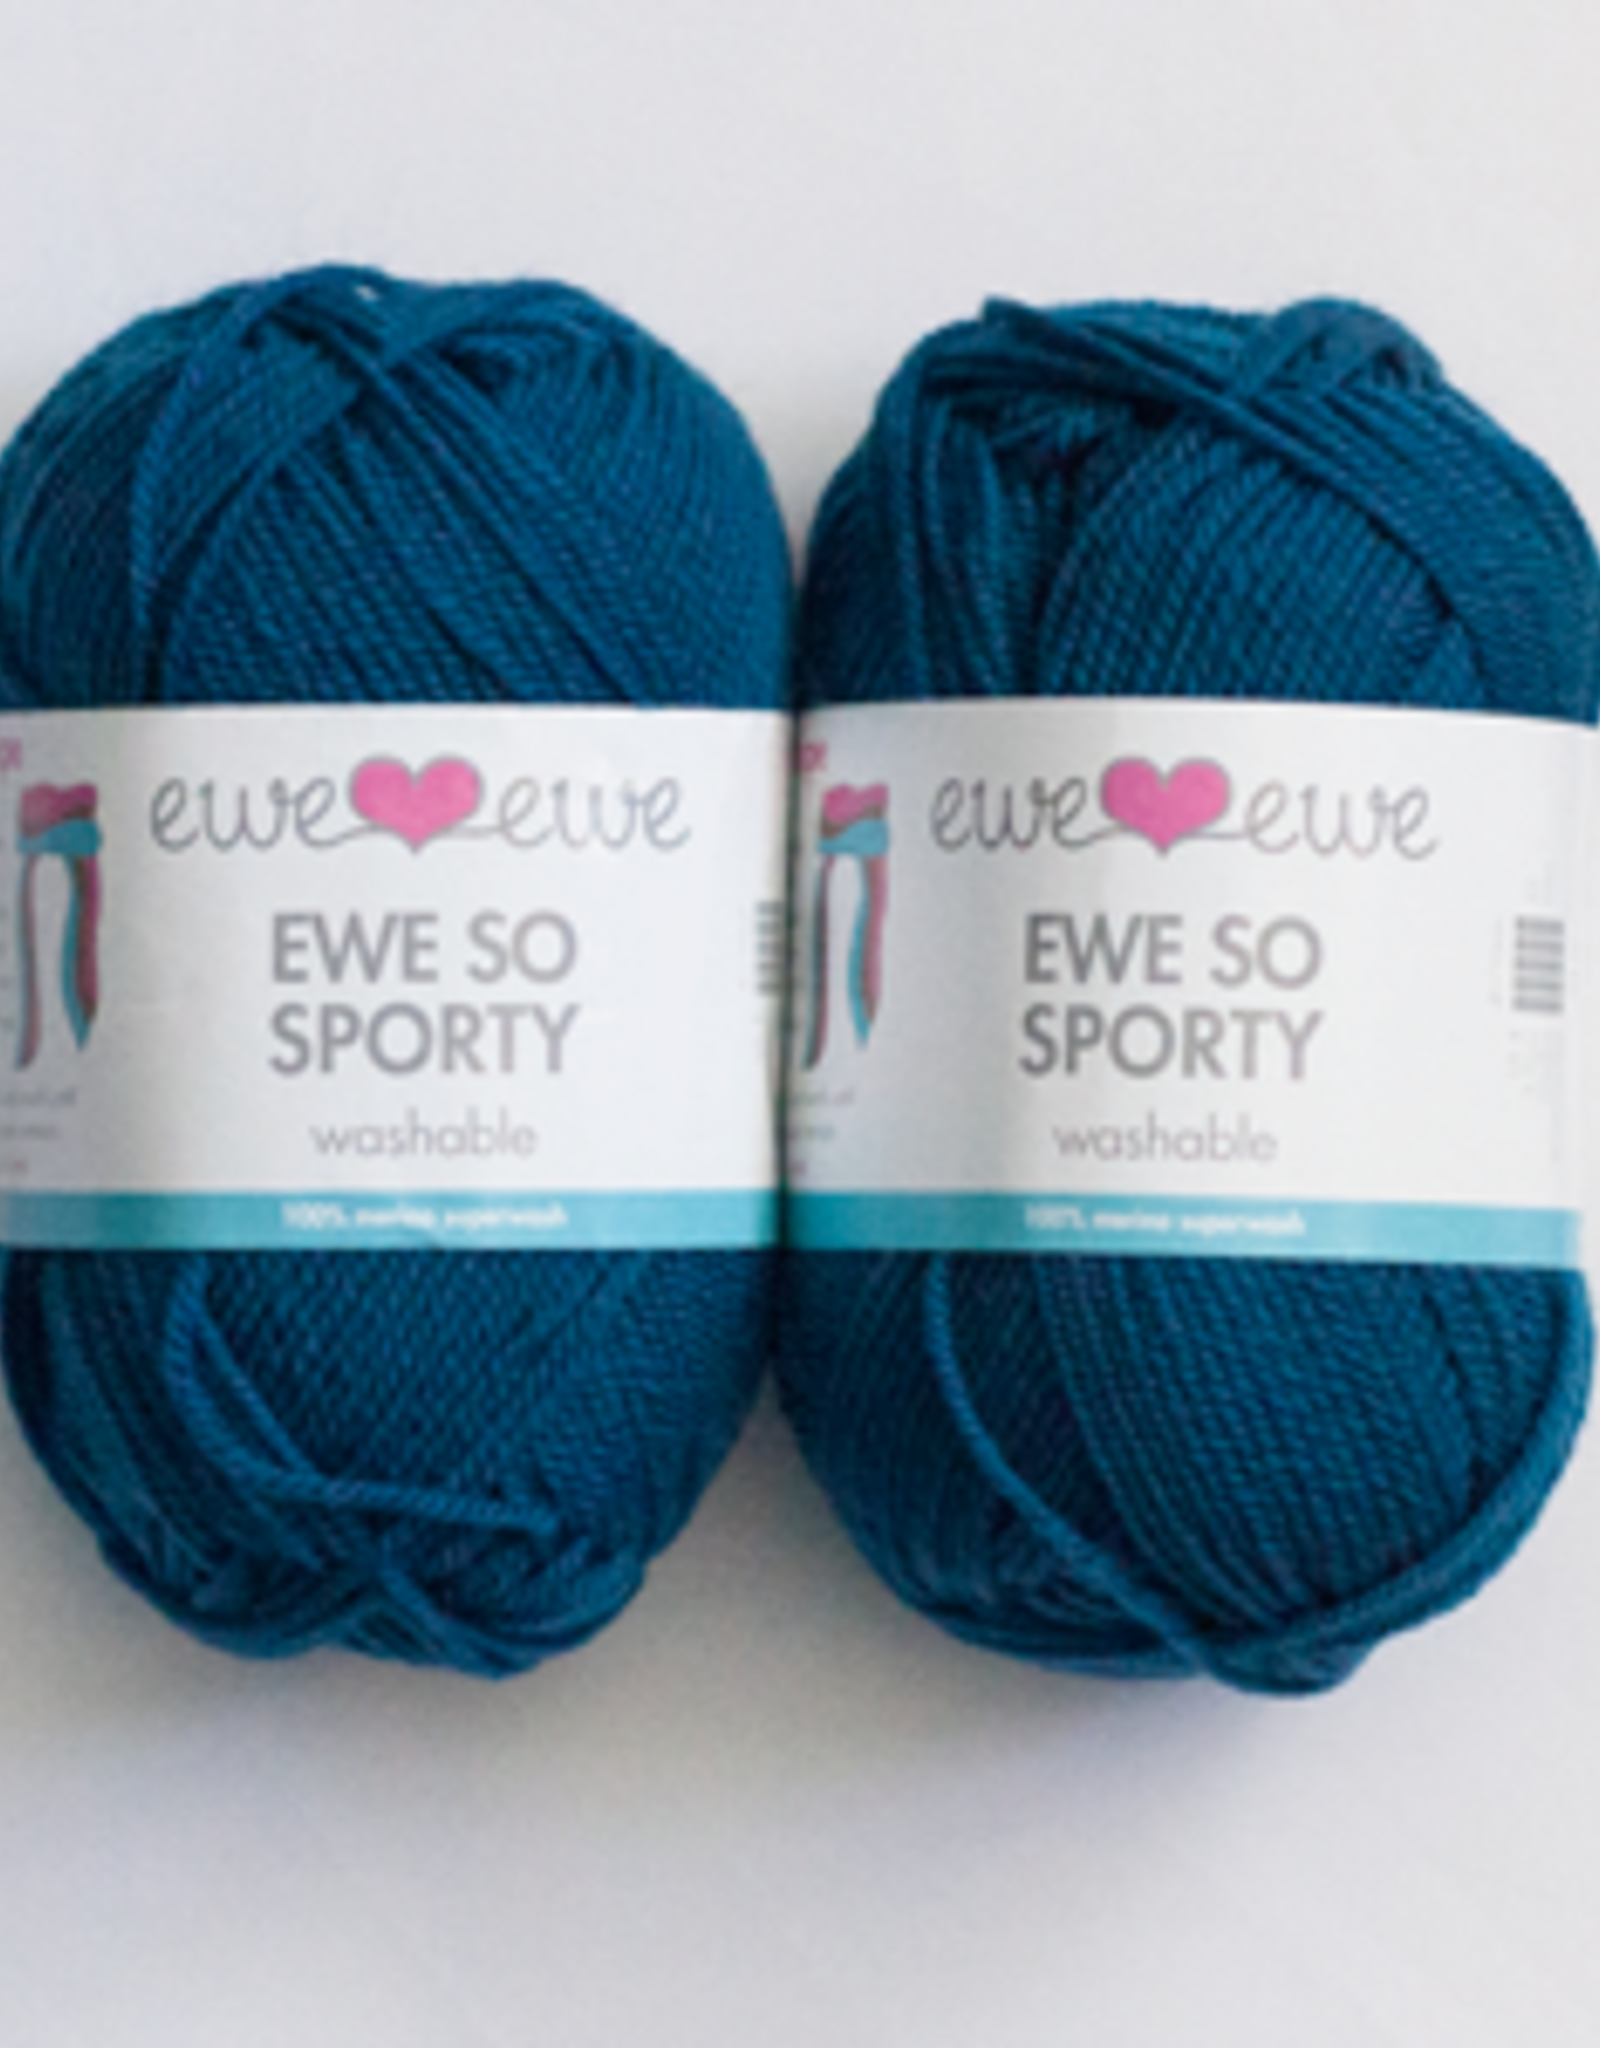 Ewe Ewe Ewe So Sporty by Ewe Ewe Yarns Color Group 3